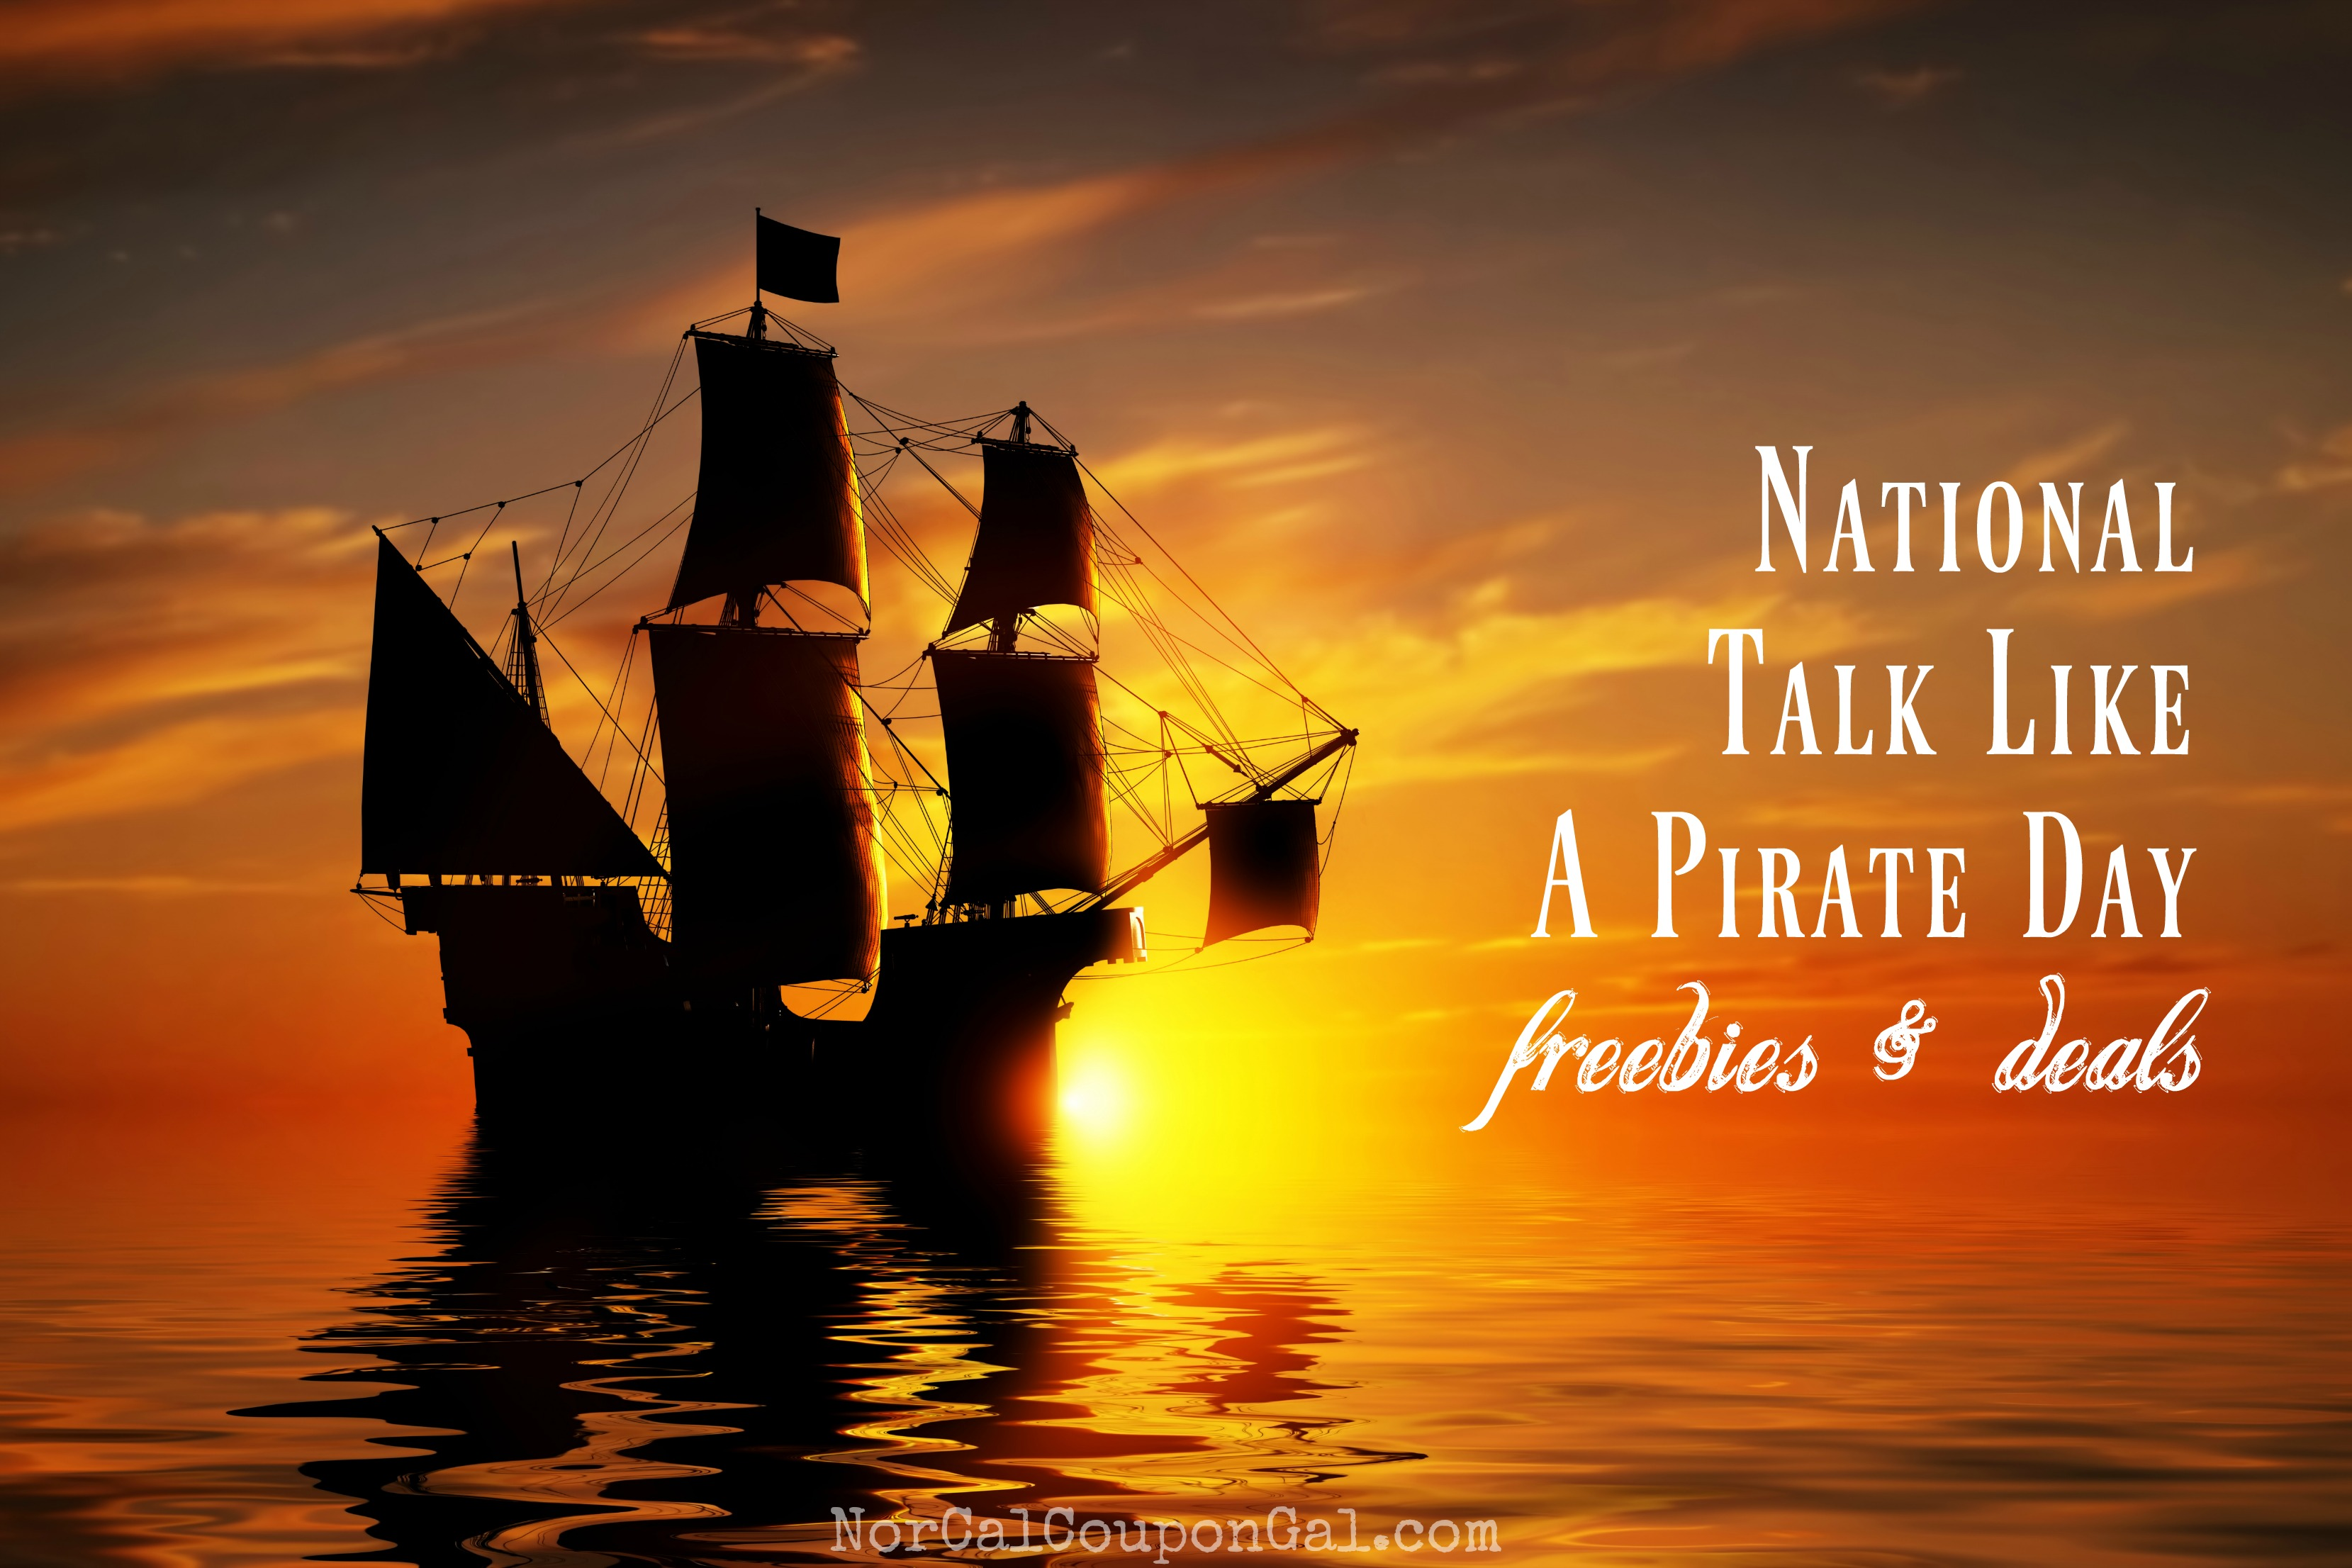 national-talk-like-a-pirate-day-freebies-deals